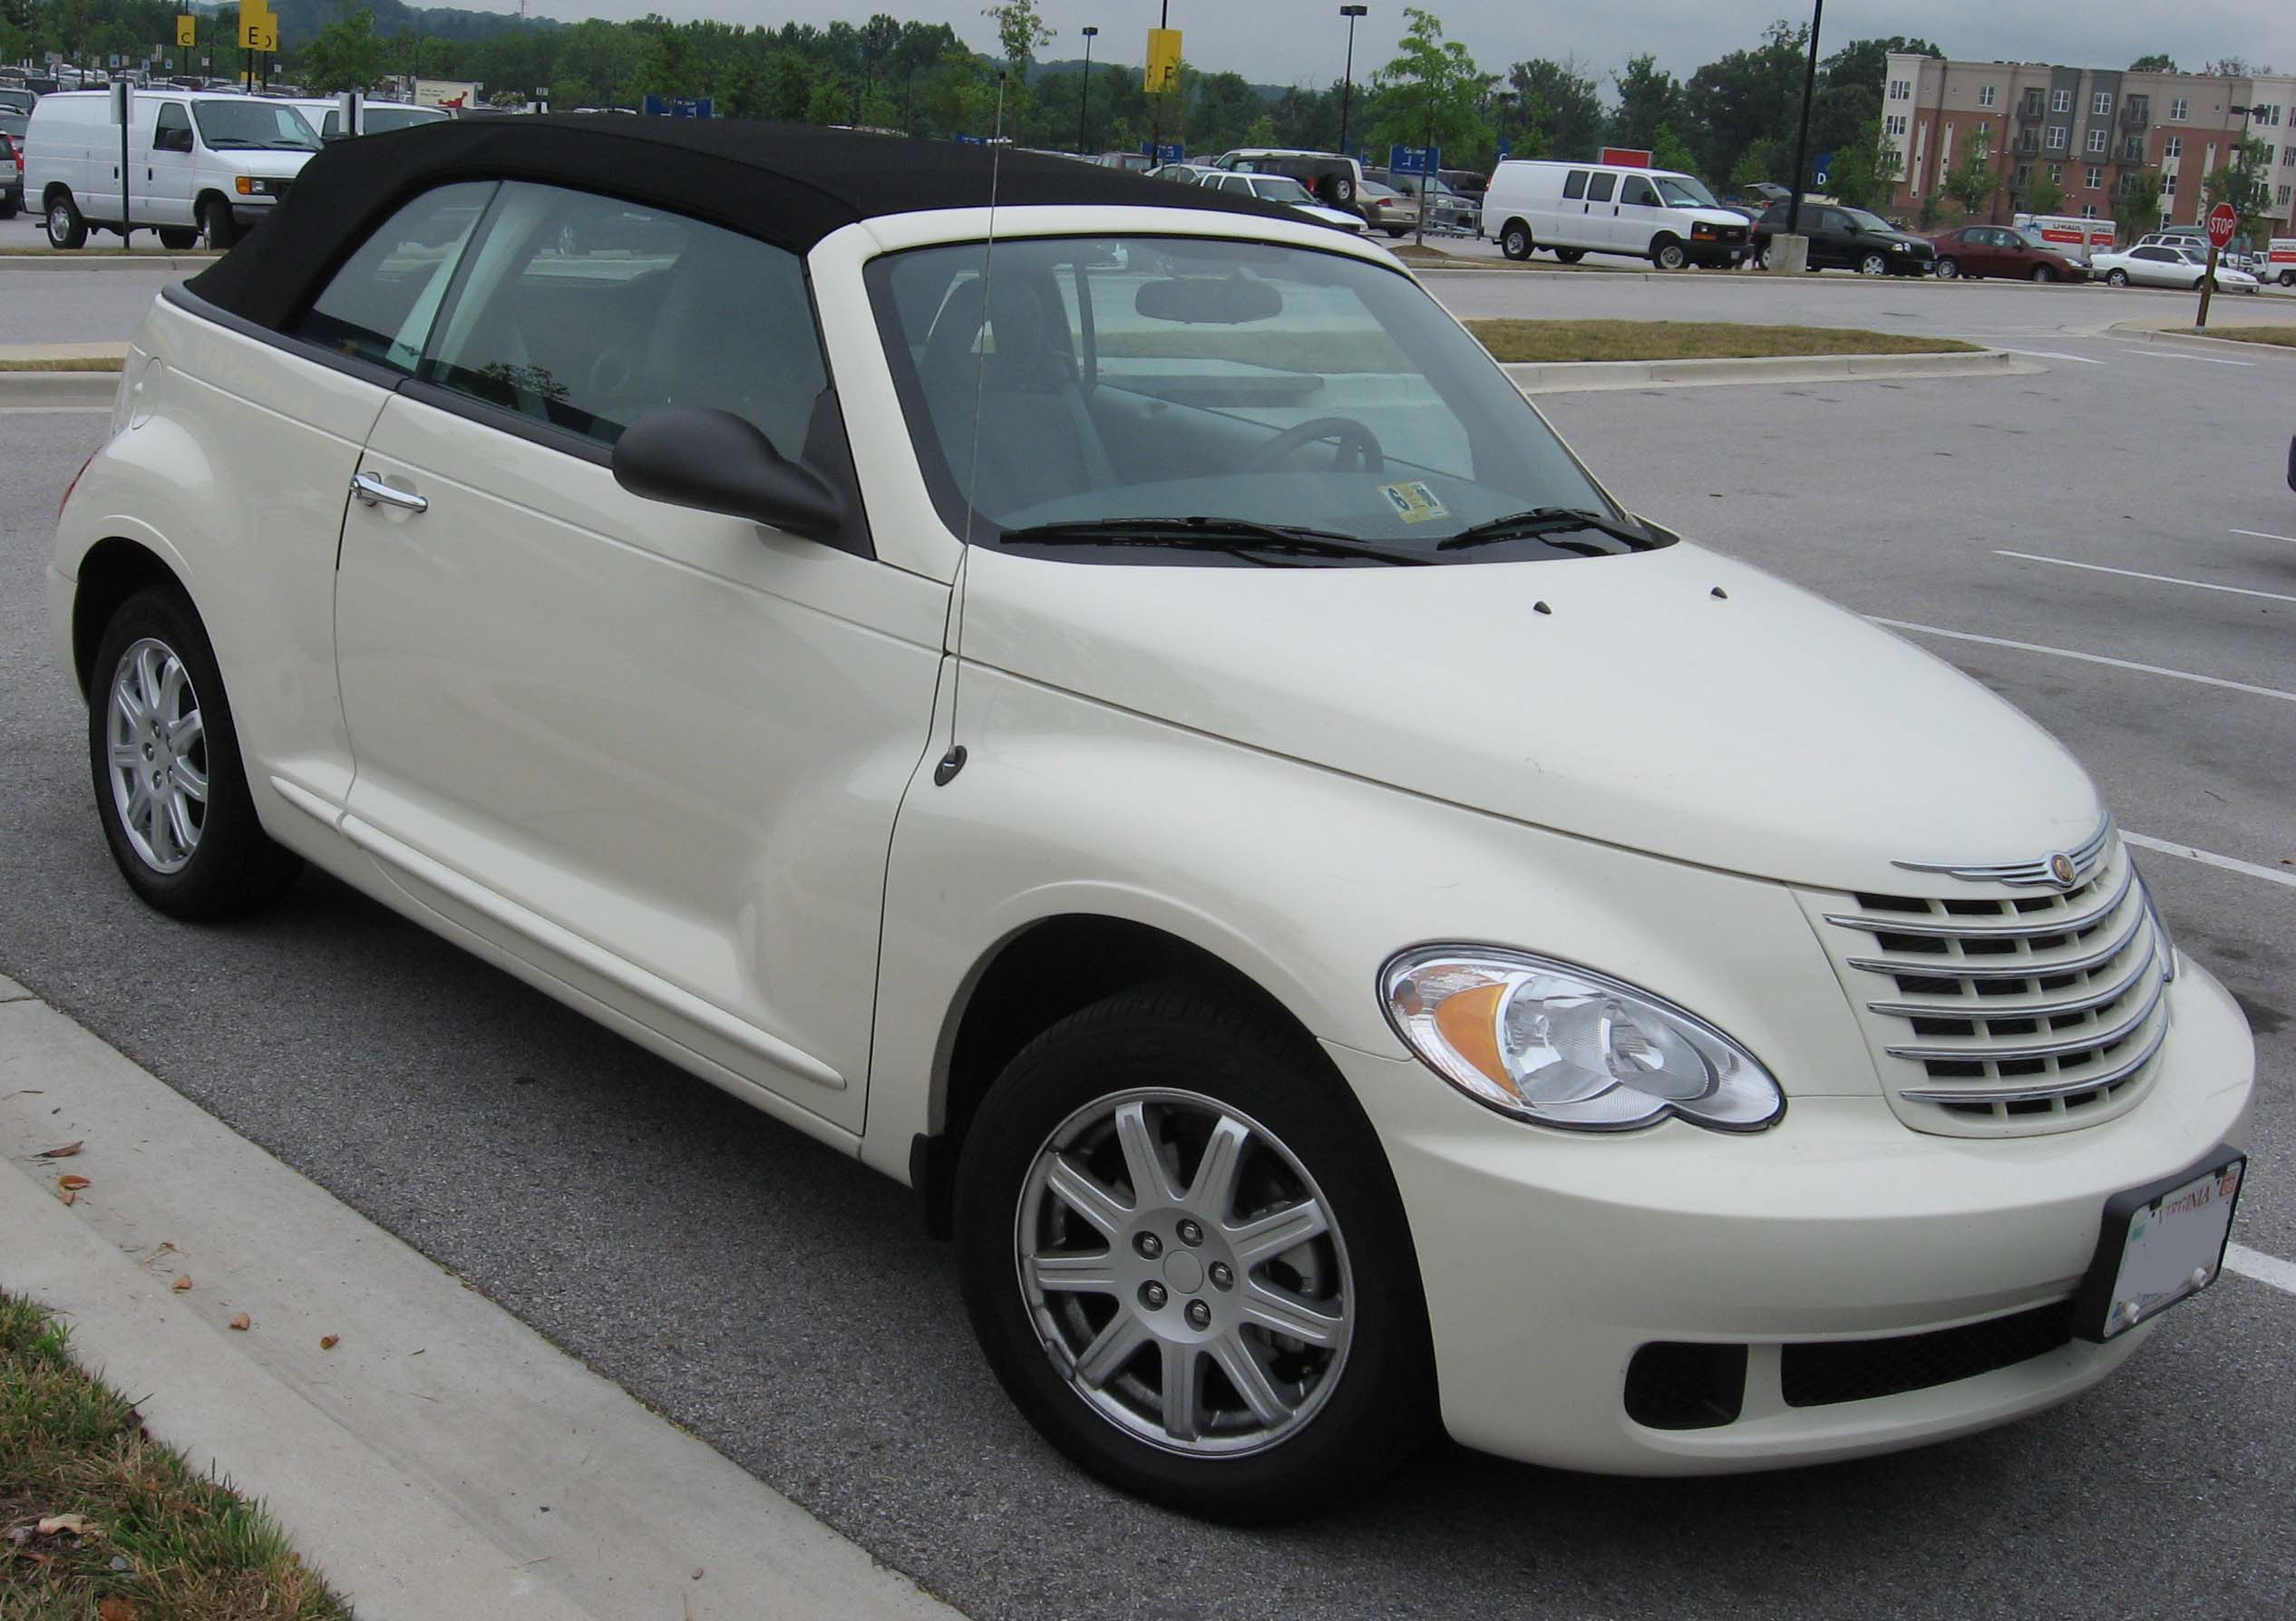 File 06 07 Chrysler Pt Cruiser Convertible Jpg Wikimedia